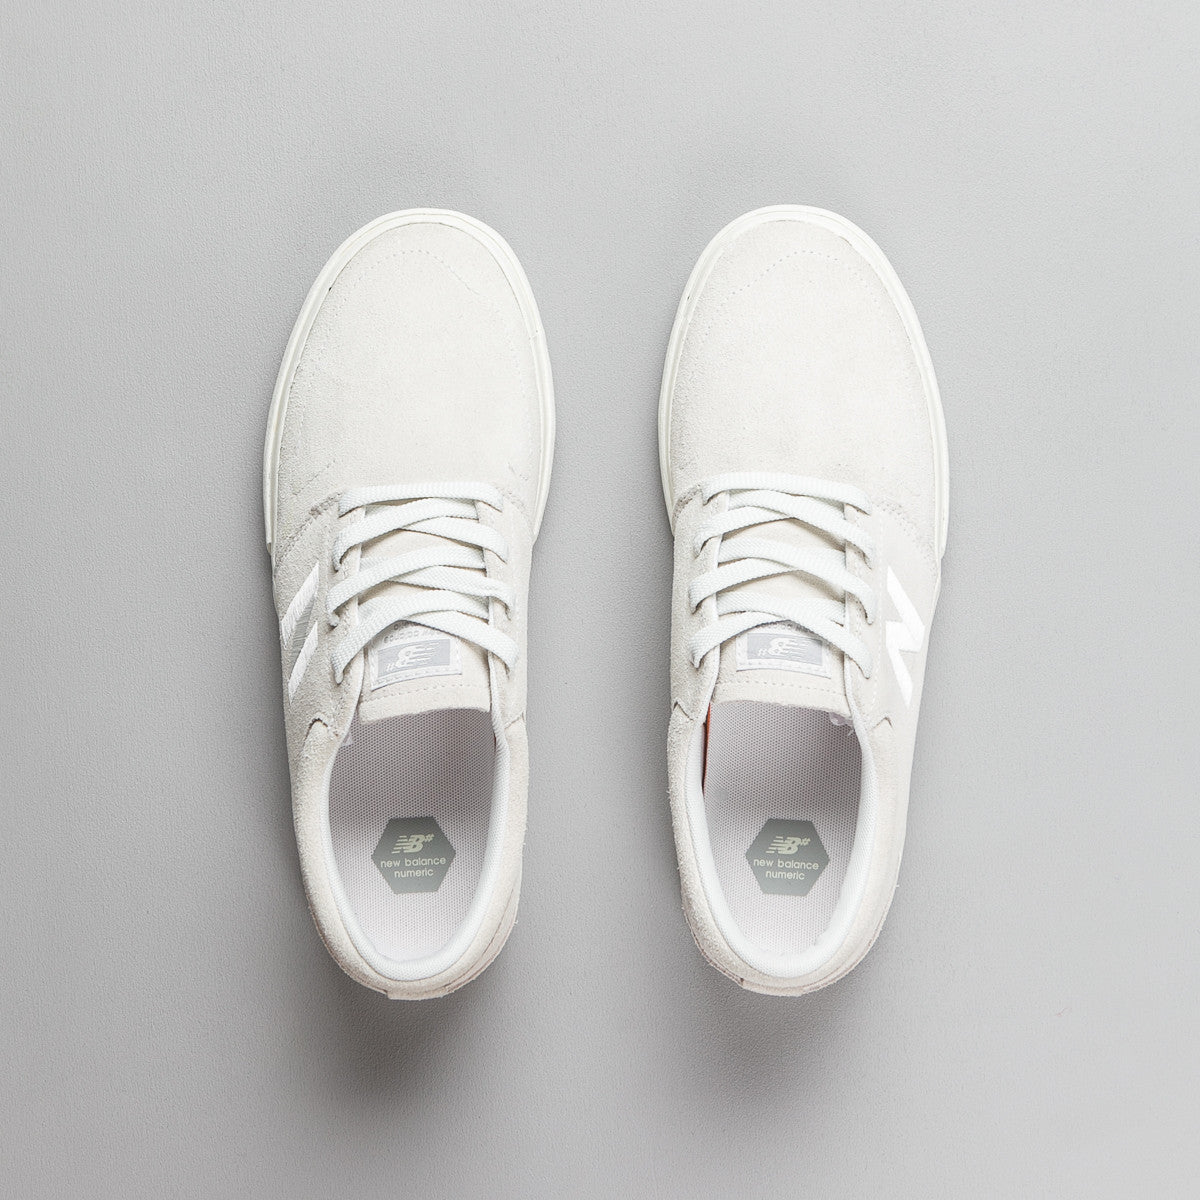 uk availability d9b80 e21f9 new-balance-numeric-brighton-344-shoes-white-light-grey-7.jpg